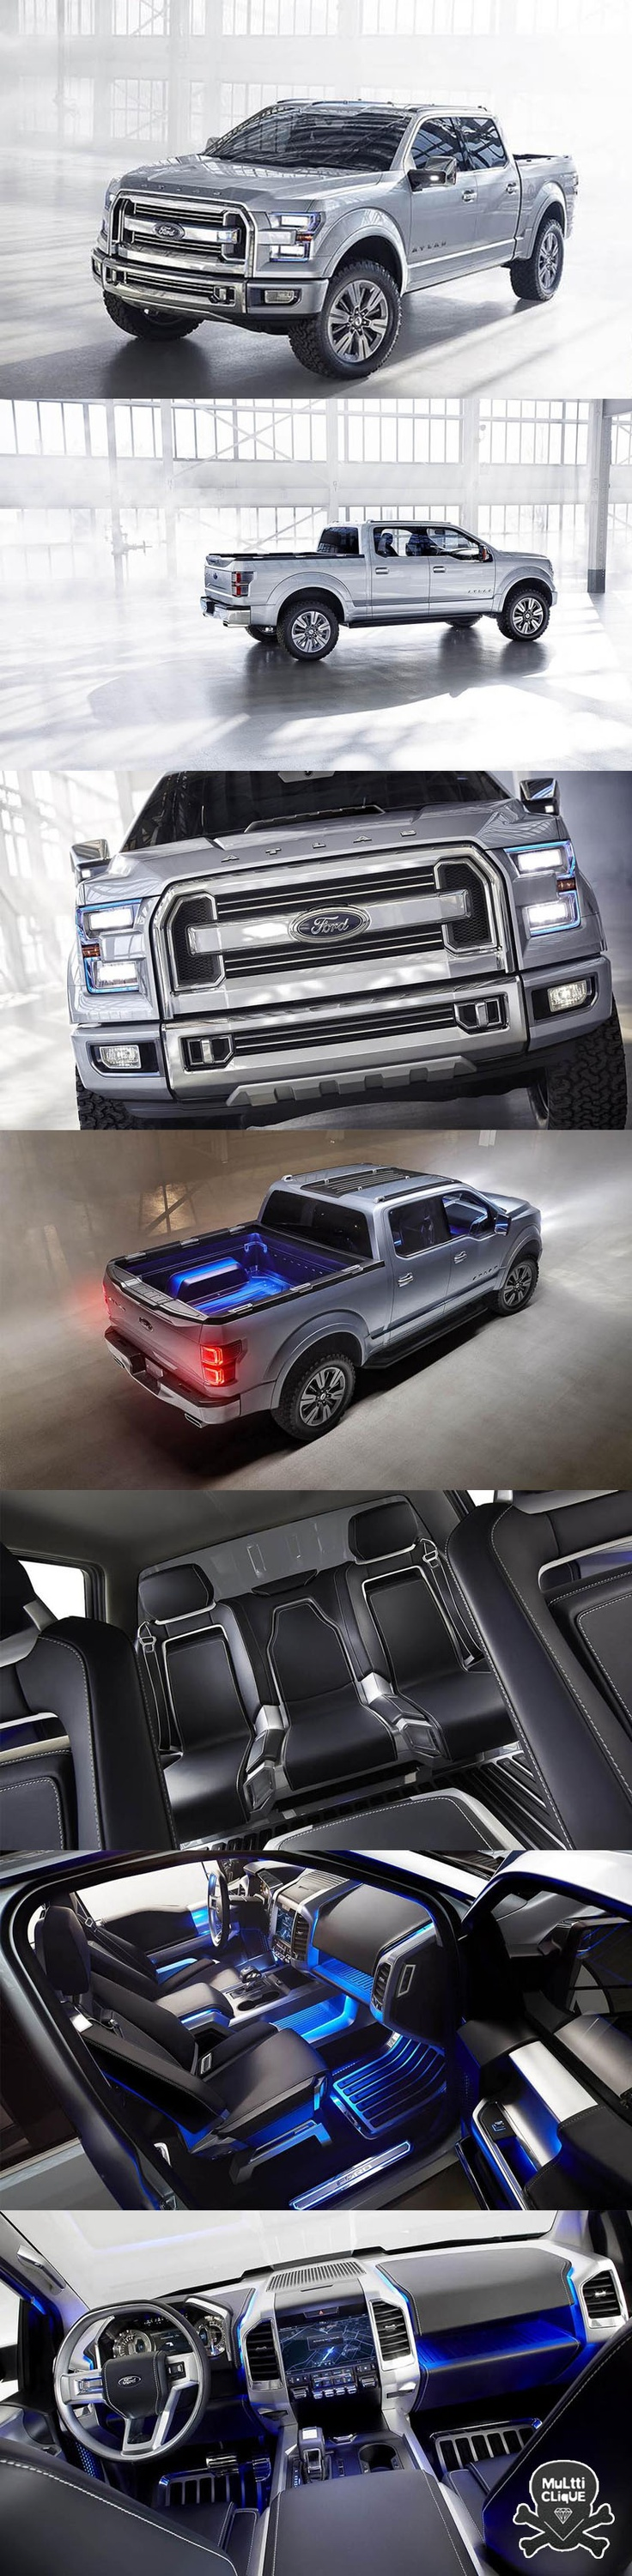 Ford atlas concept my hubbie s dream truck